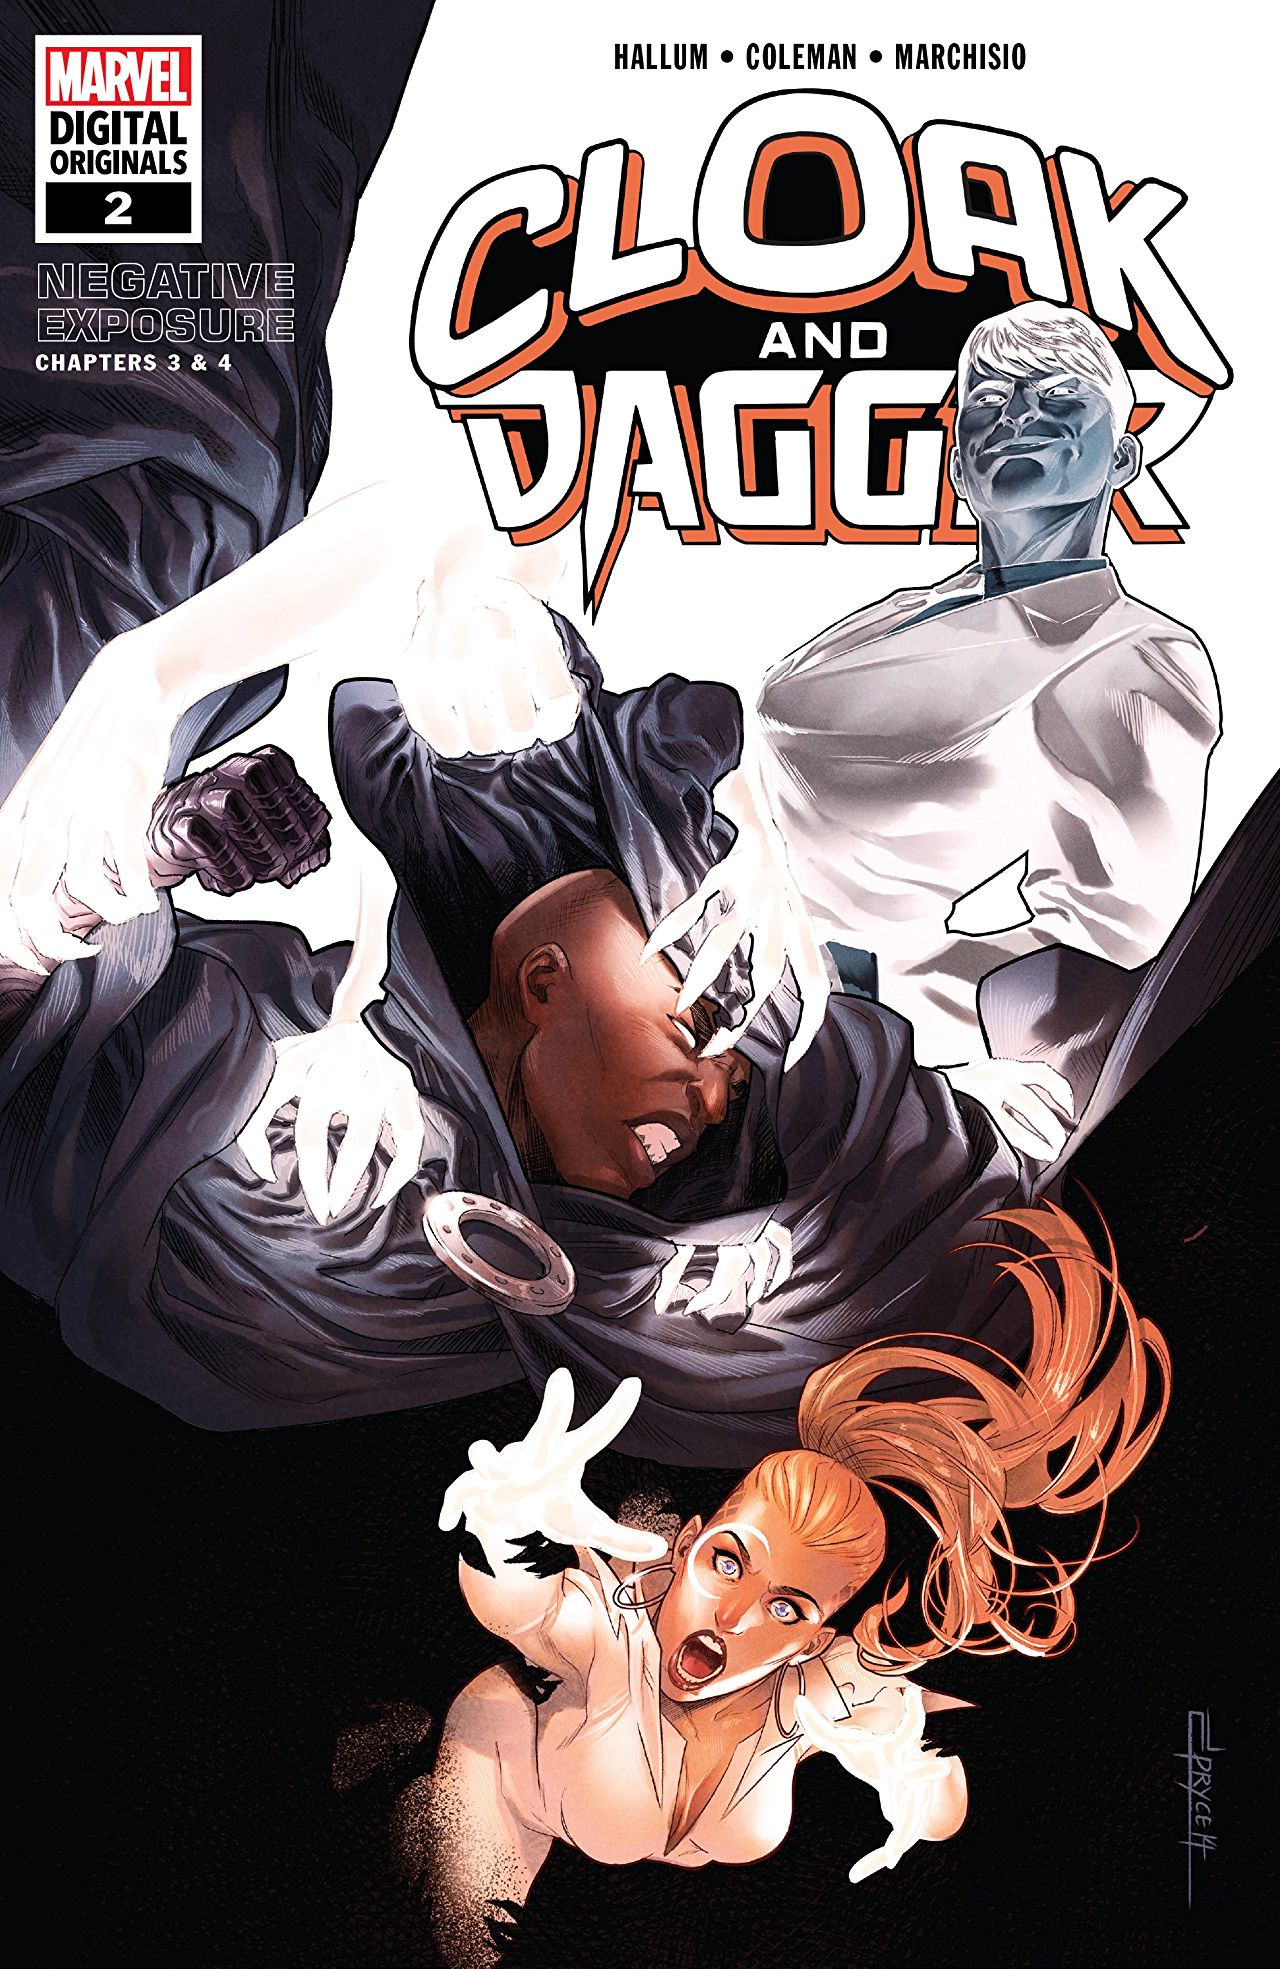 Cloak and Dagger: Negative Exposure - Marvel Digital Original Vol 1 2